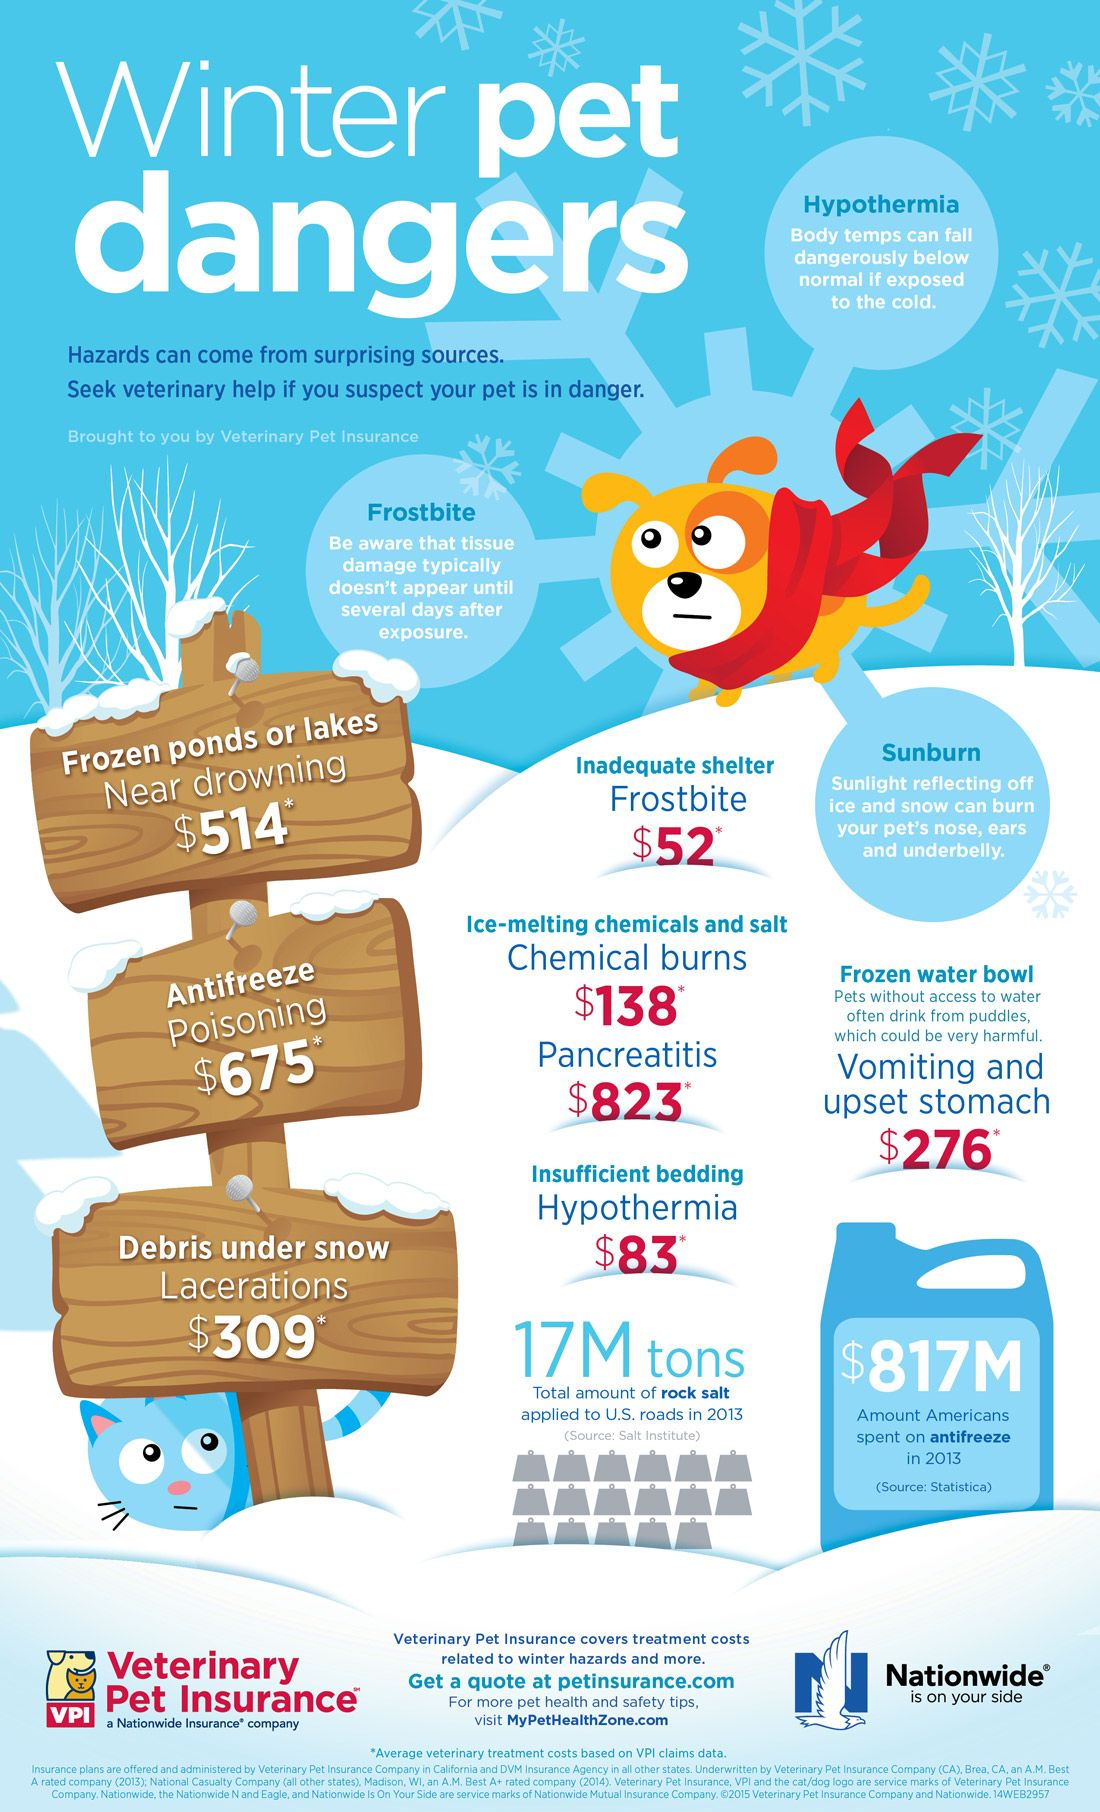 Nationwide Pet Insurance Shares The Average Cost To Treat These